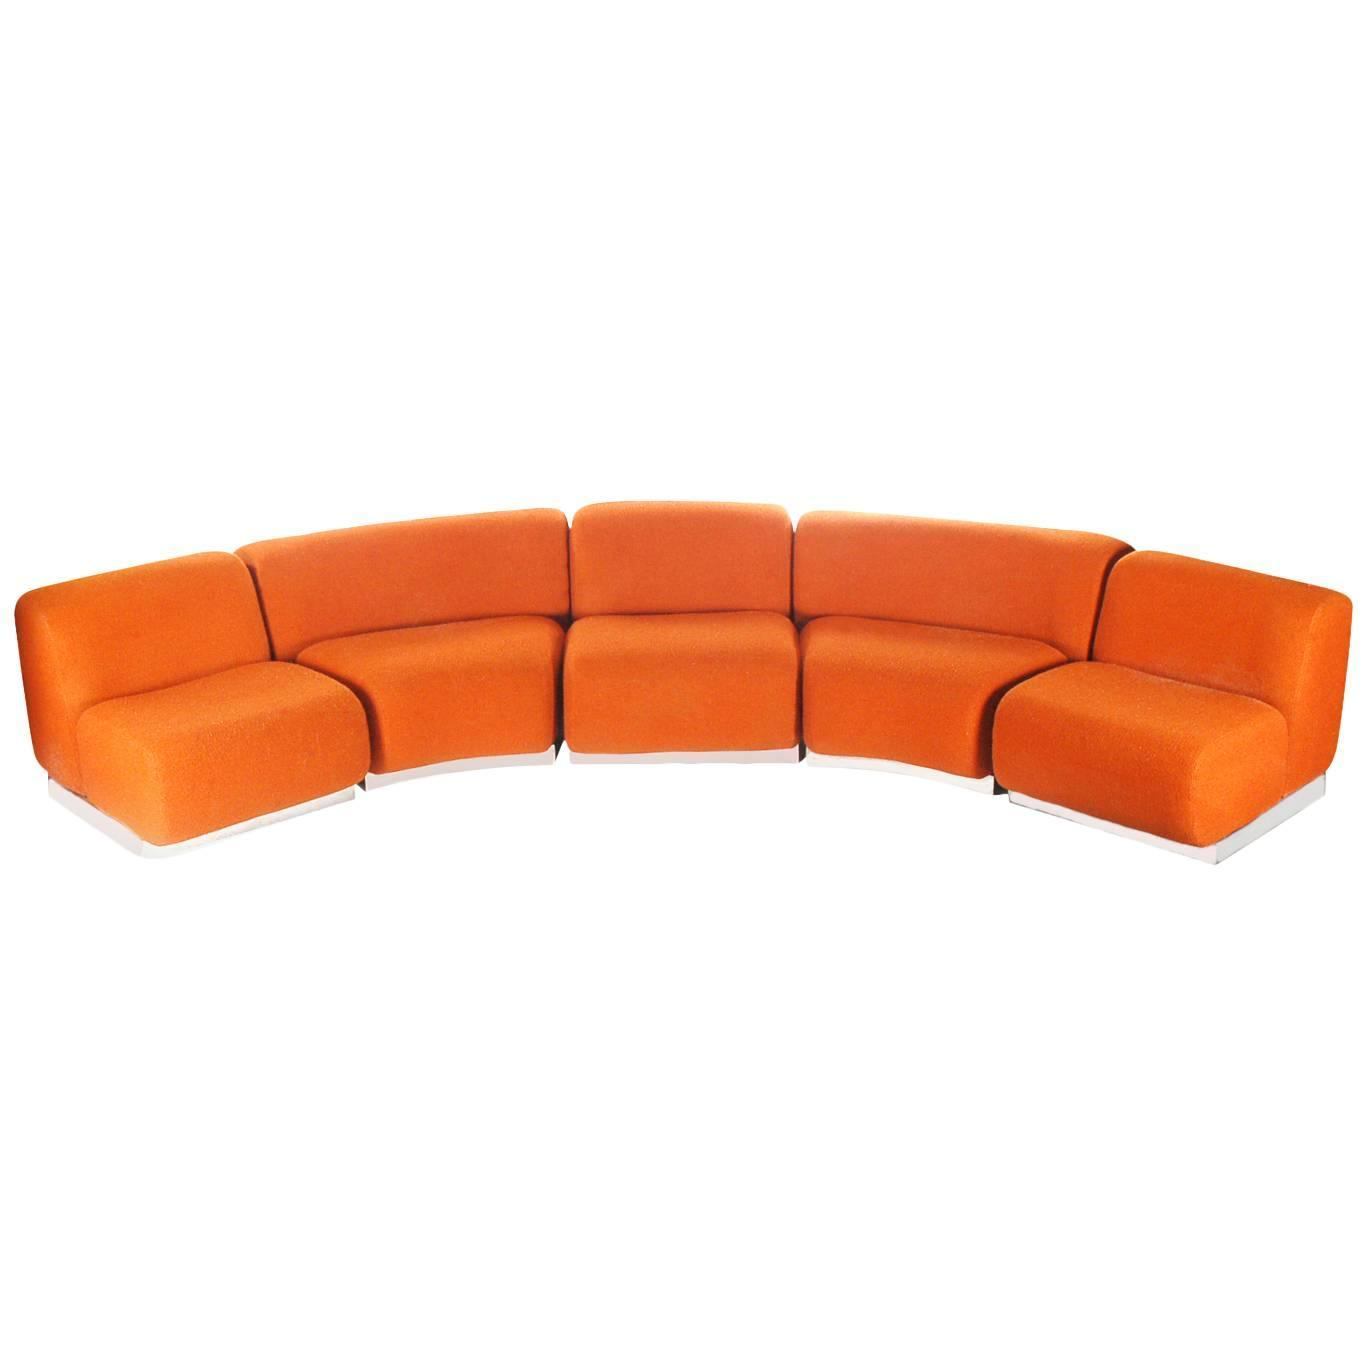 Curved Or Circular Mid-Century Modern Modular Sofa With